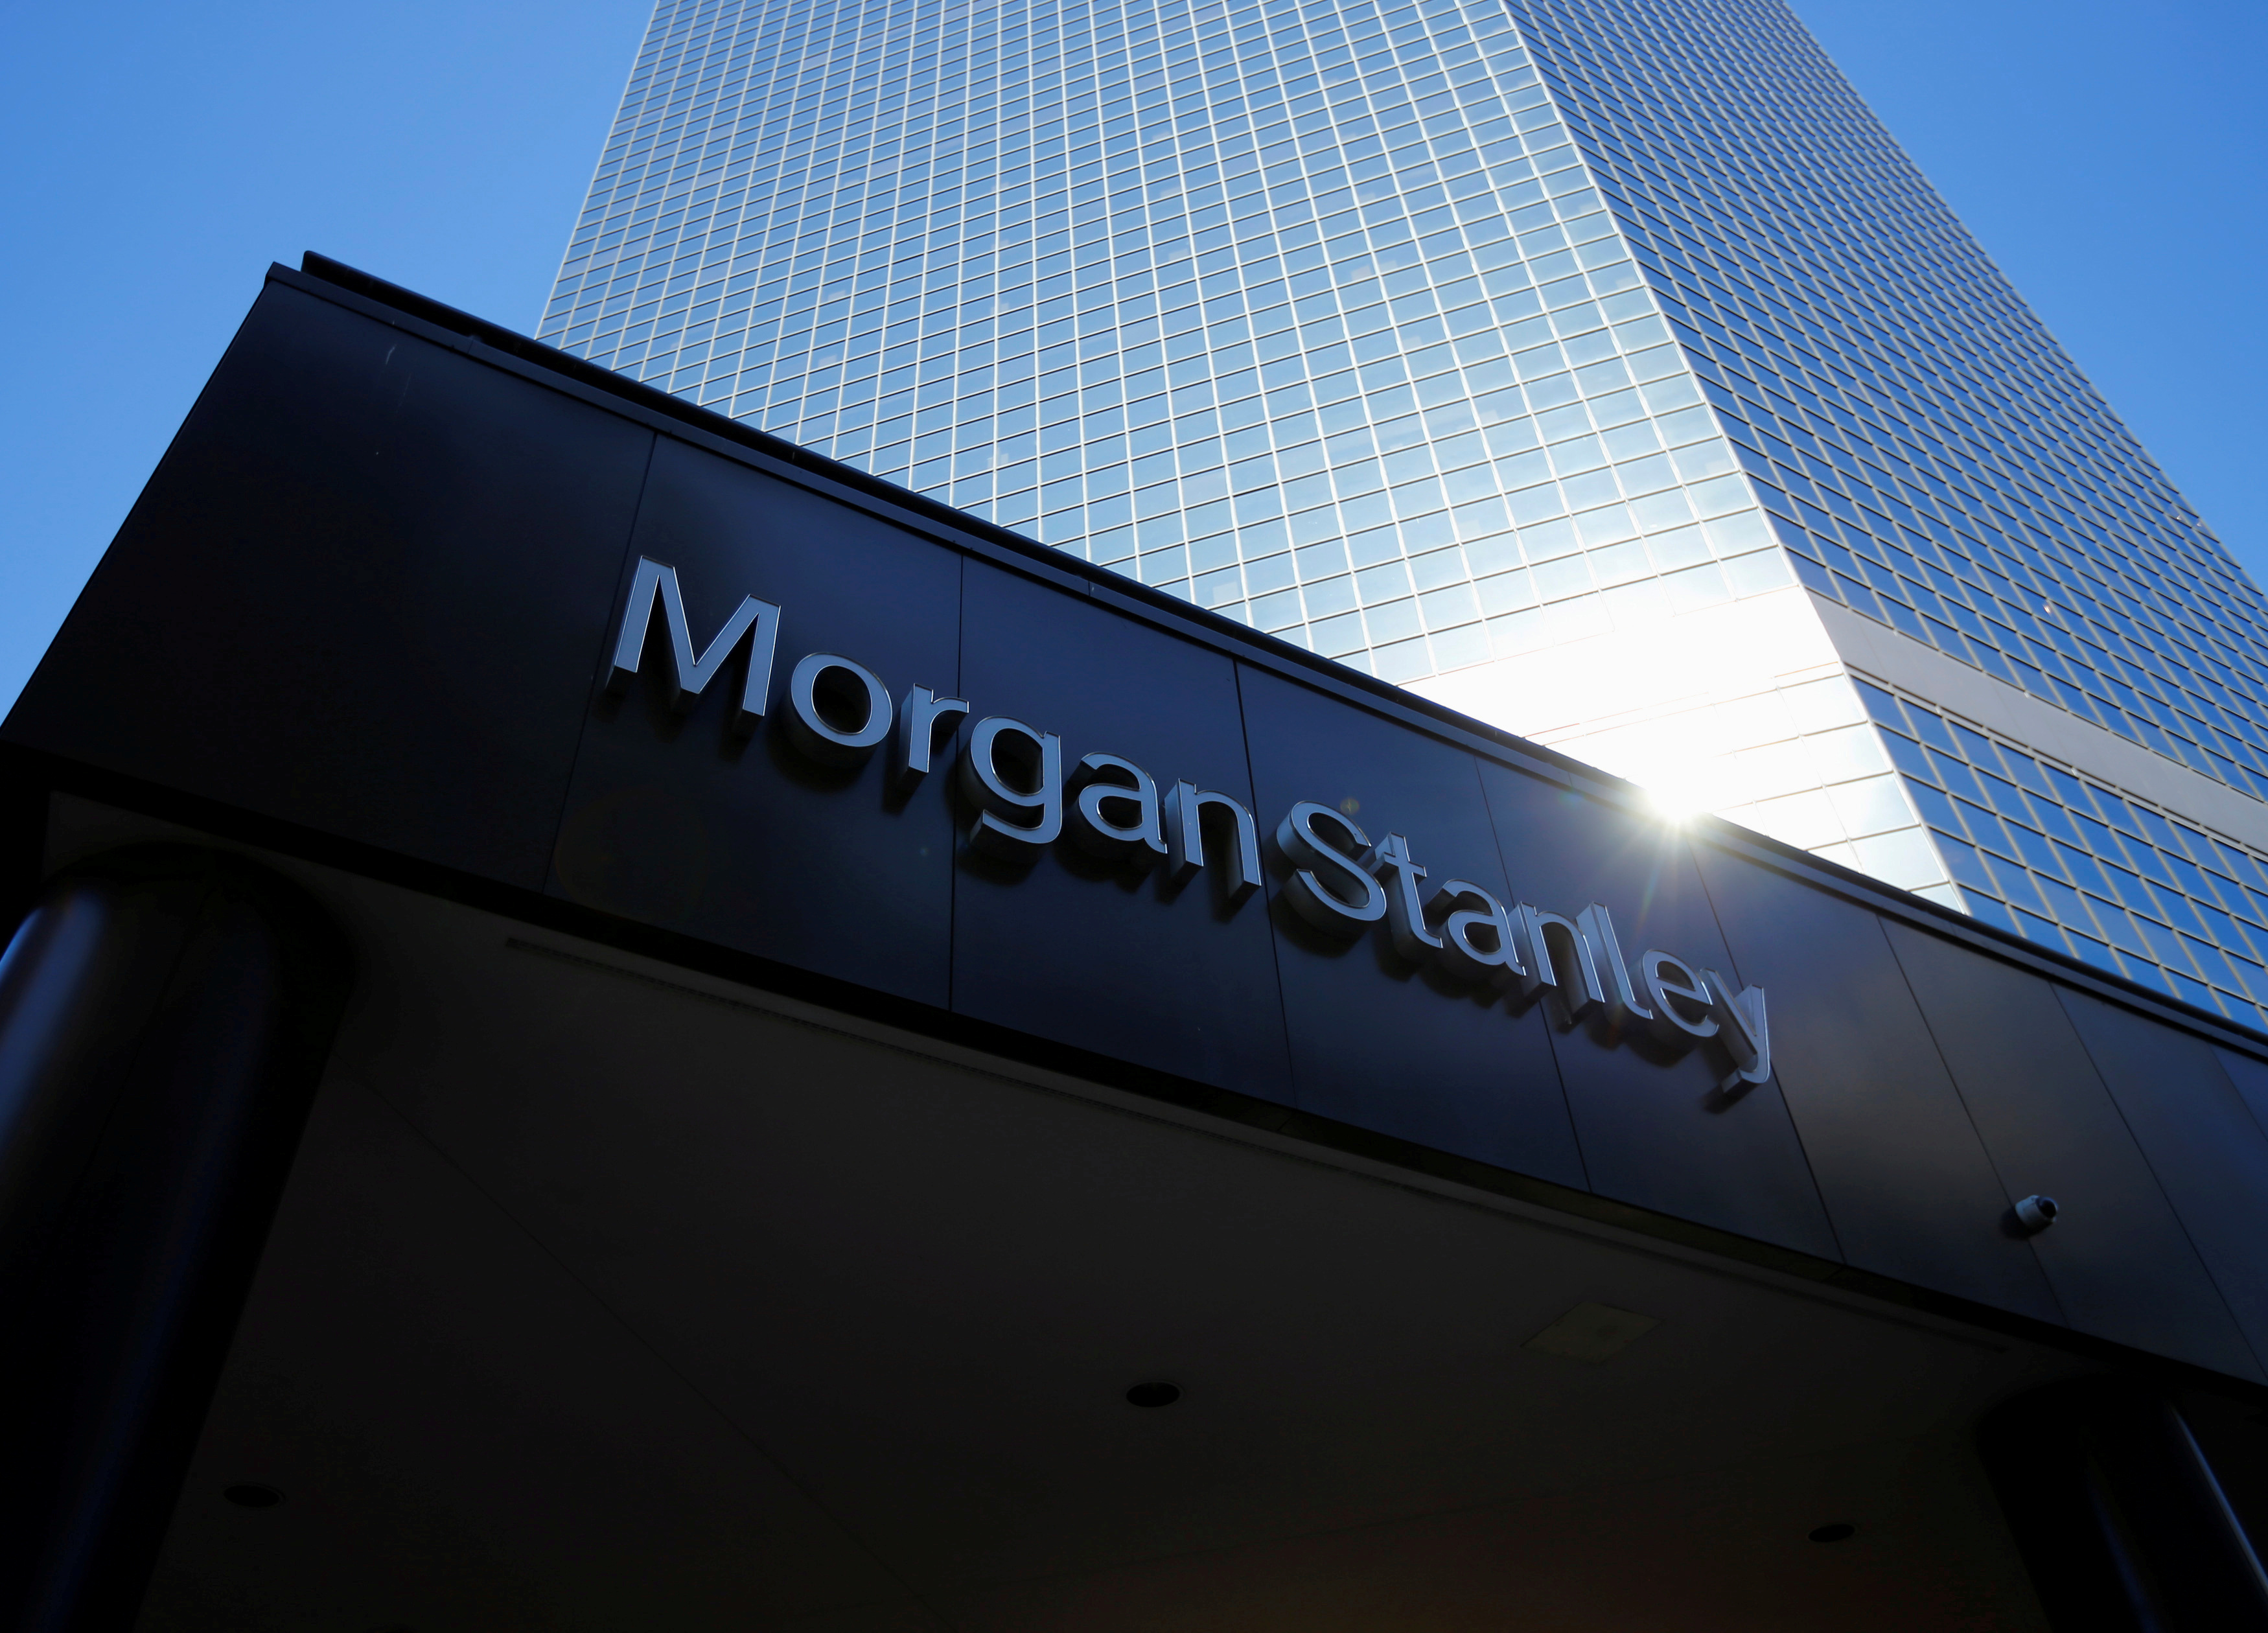 The corporate logo of financial firm Morgan Stanley is pictured on a building in San Diego, California, Sept. 24, 2013. REUTERS/Mike Blake